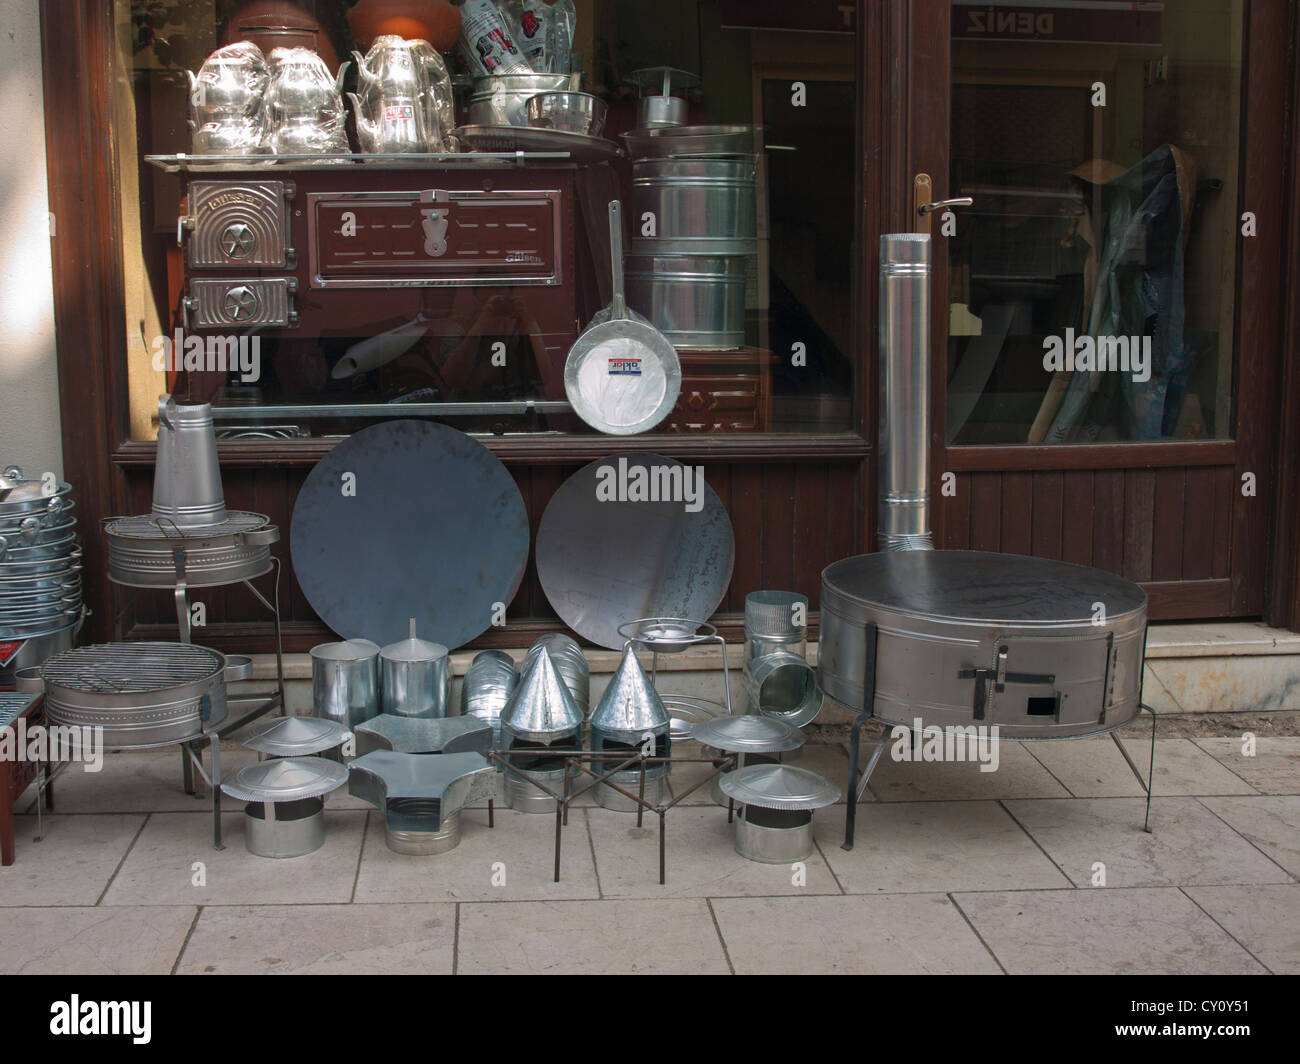 Portable stove and kitchen utensils outside of shop in market district of Bursa Turkey - Stock Image